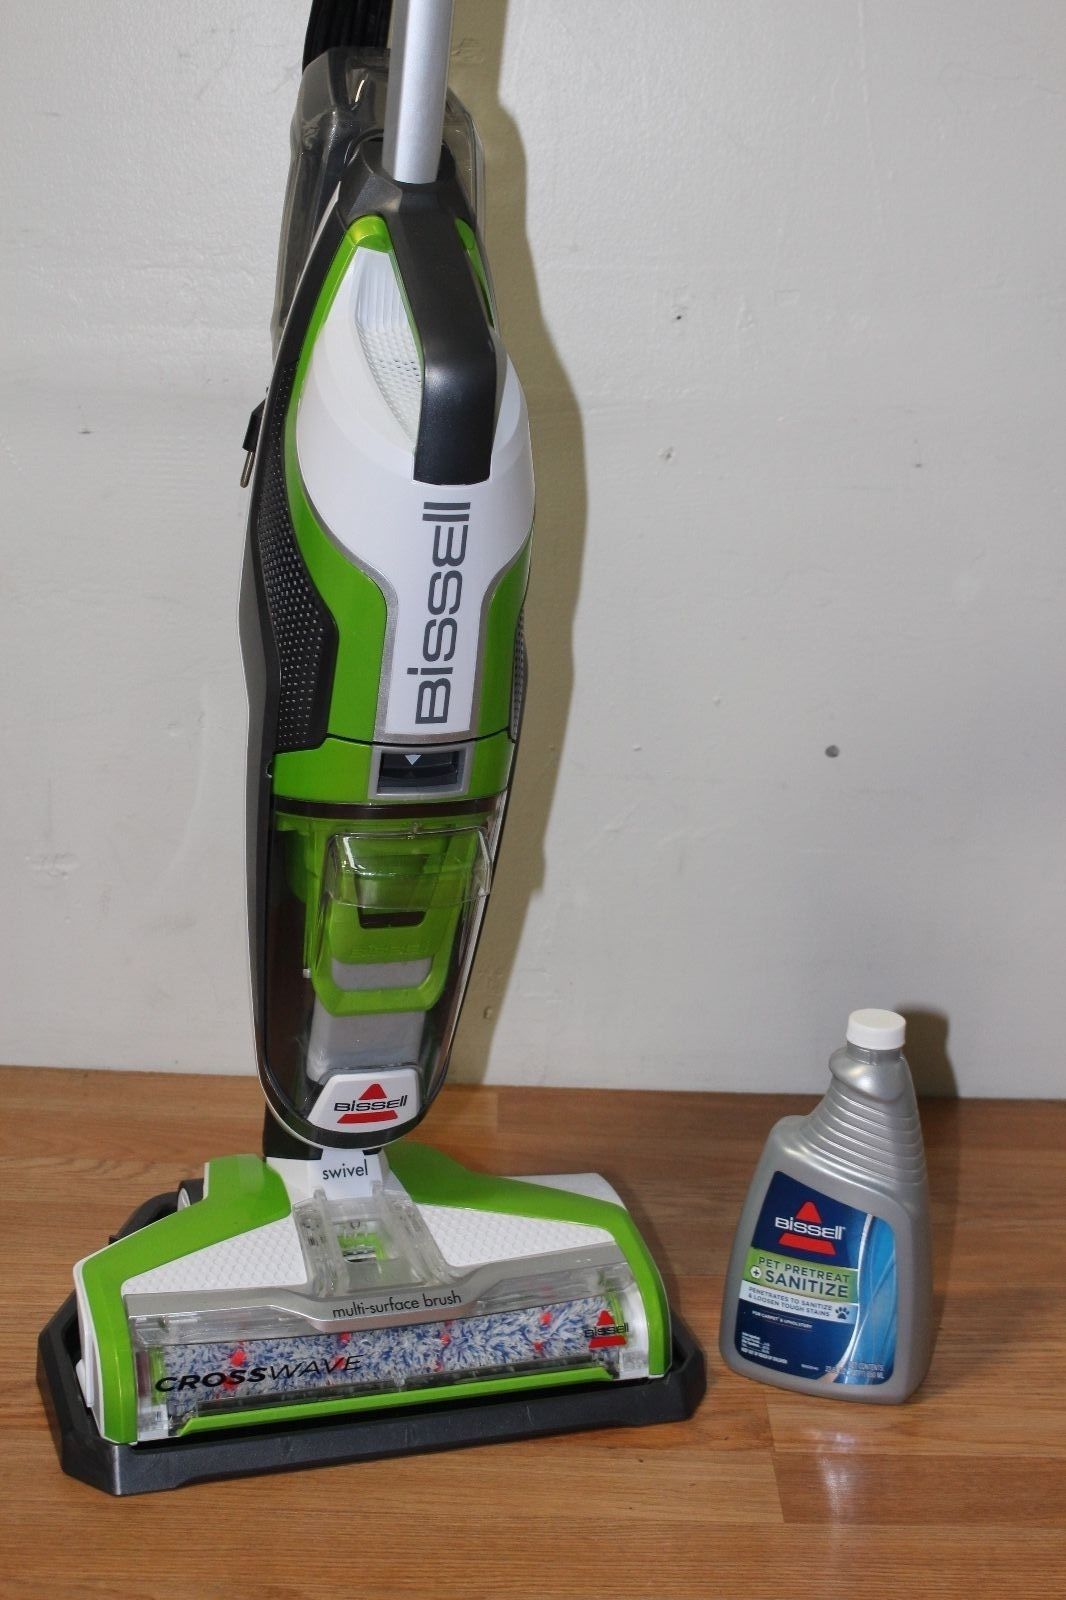 Bissell 1785A CLEANER, CrossWave All in One Multi Surface